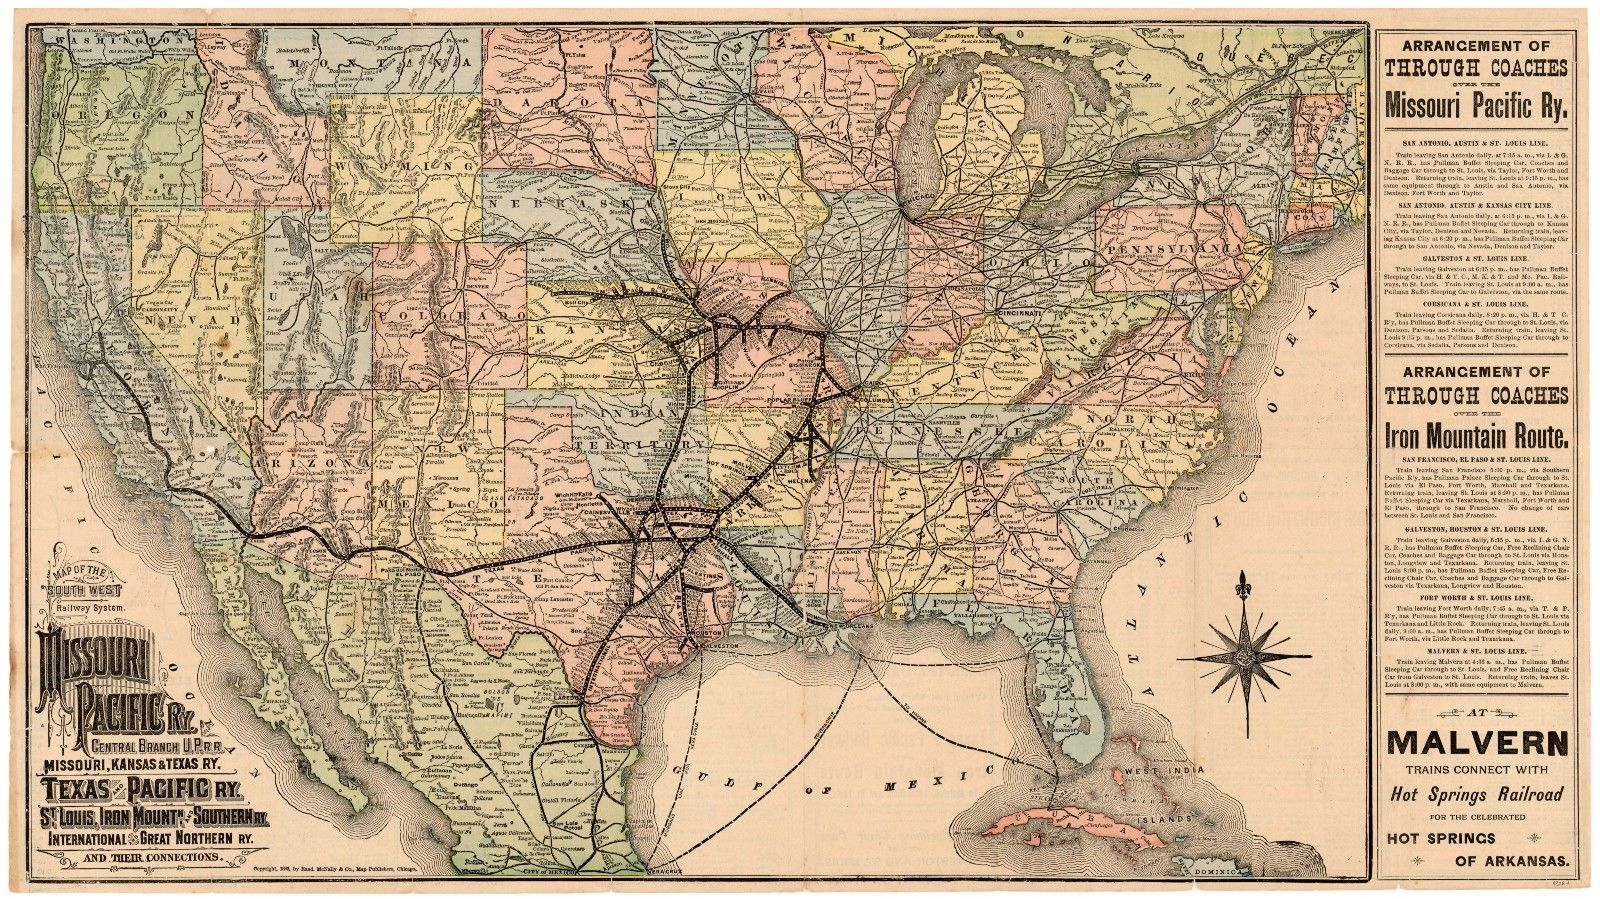 Map Of The Southwest Railway System